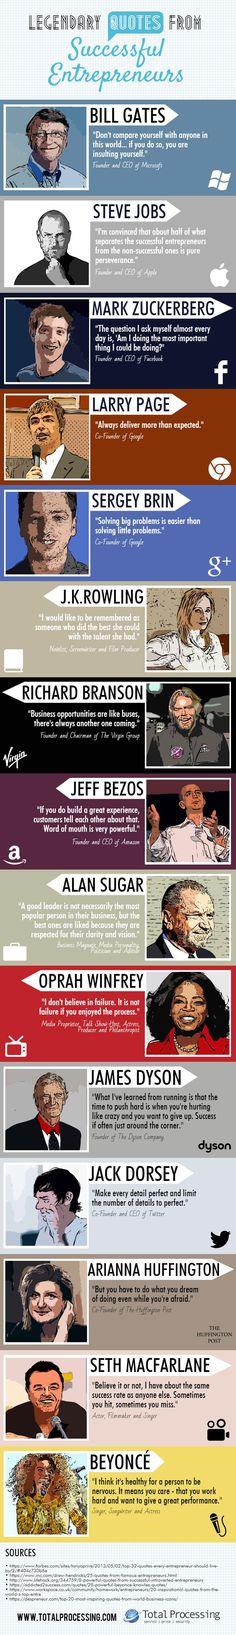 15 Legendary Quotes From Successful Entrepreneurs